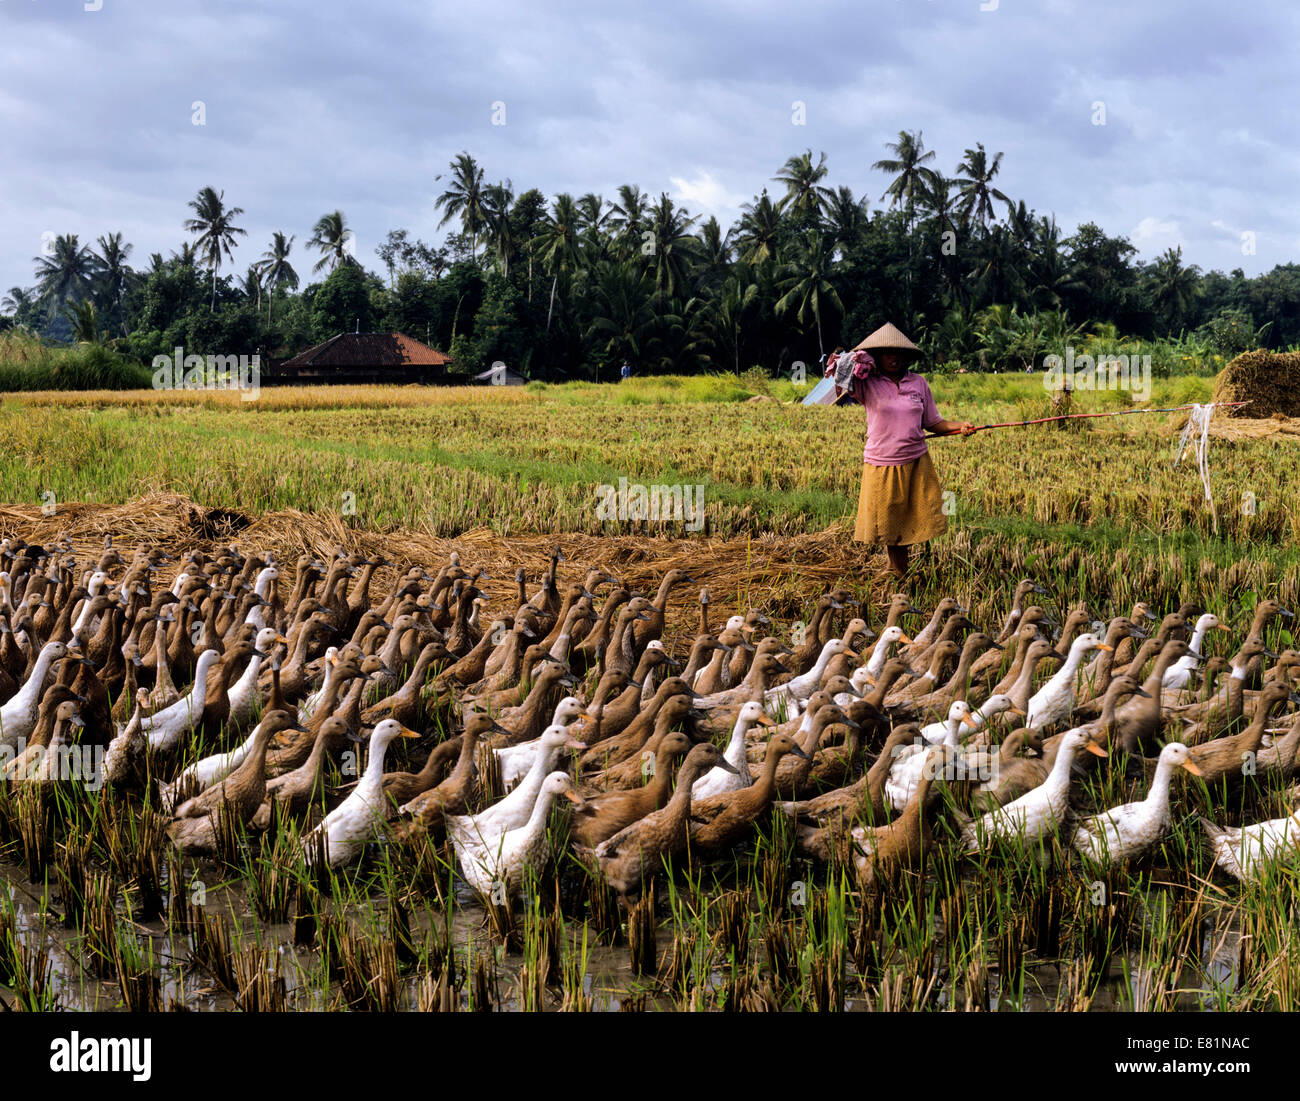 Farmer with a gaggle of indonesian runner ducks, Ubud, Bali, Indonesia - Stock Image